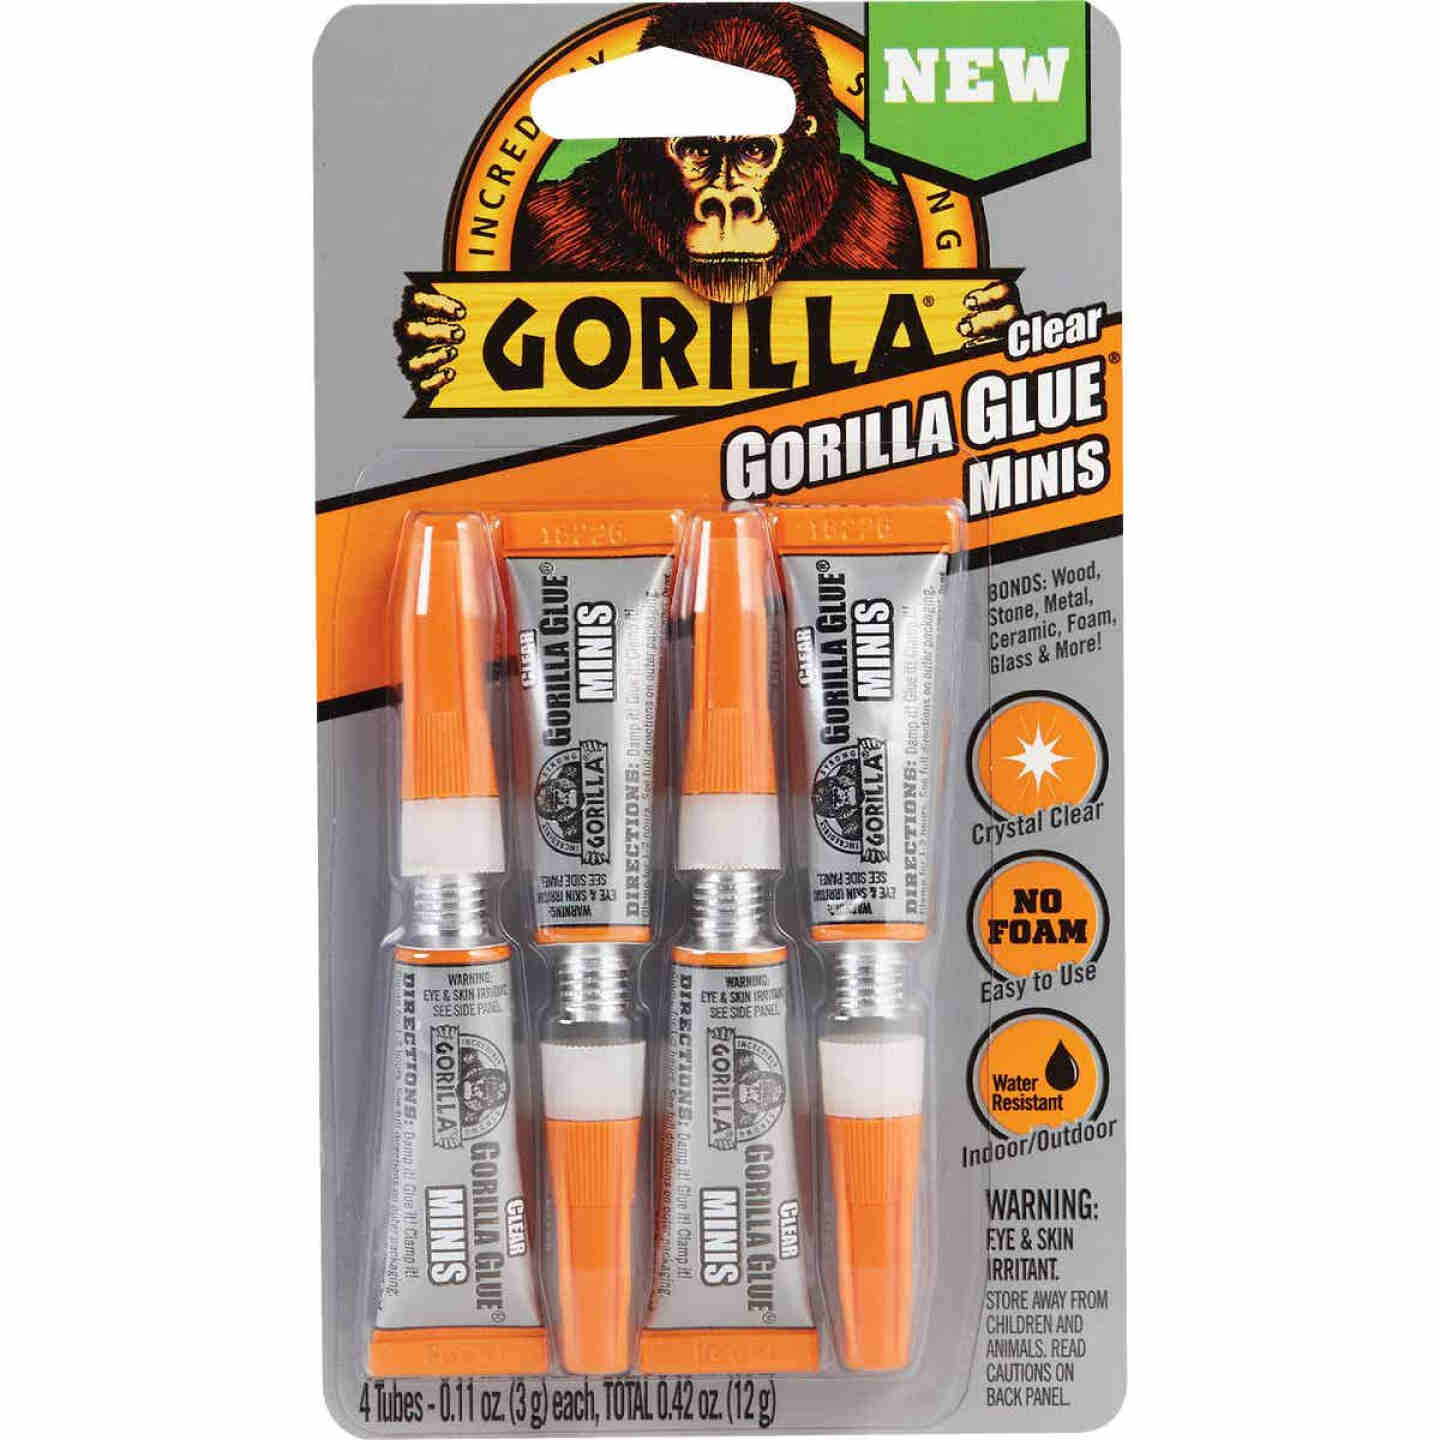 Gorilla 0.42 Oz. Clear Mini All-Purpose Glue (4-Pack) Image 1